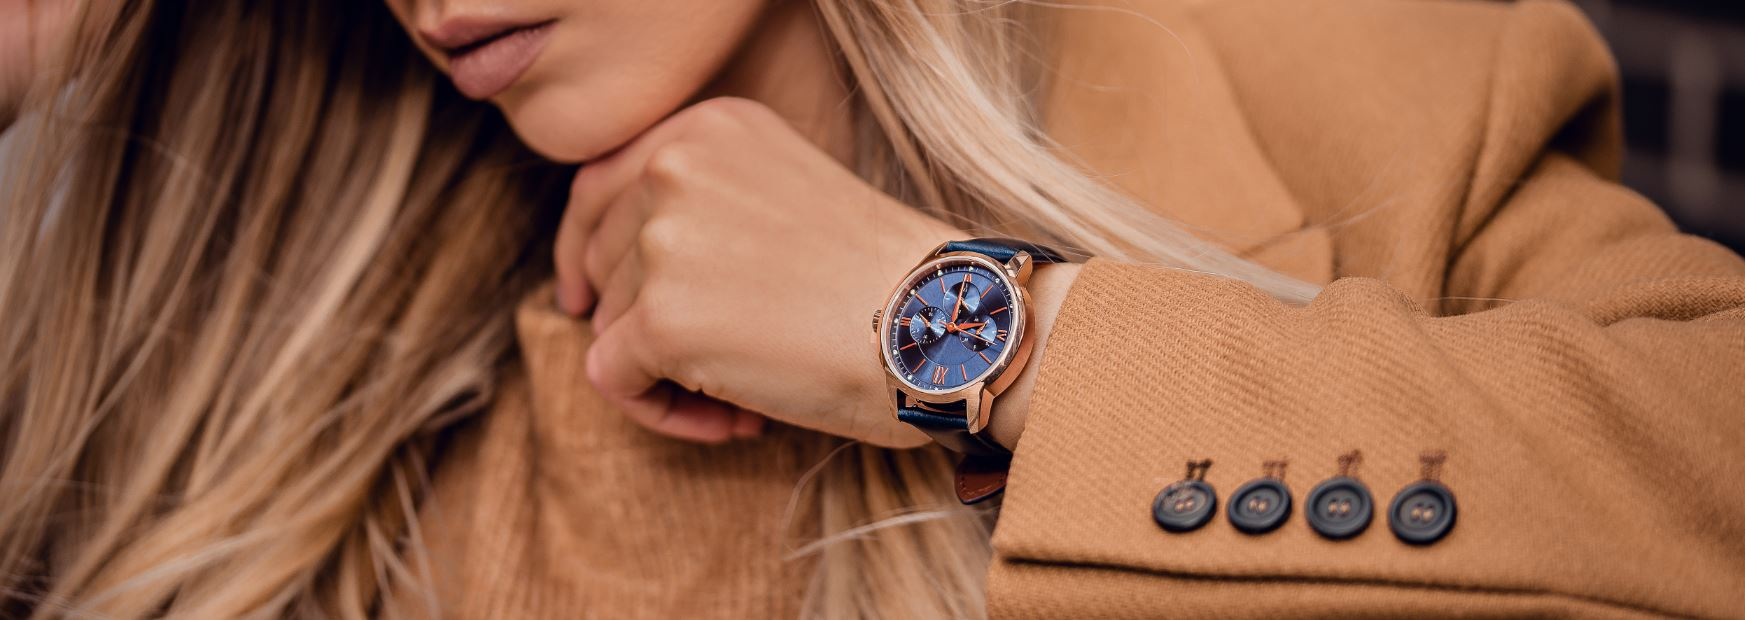 Best Women's Luxury Watches for Under ~$5K post thumbnail image